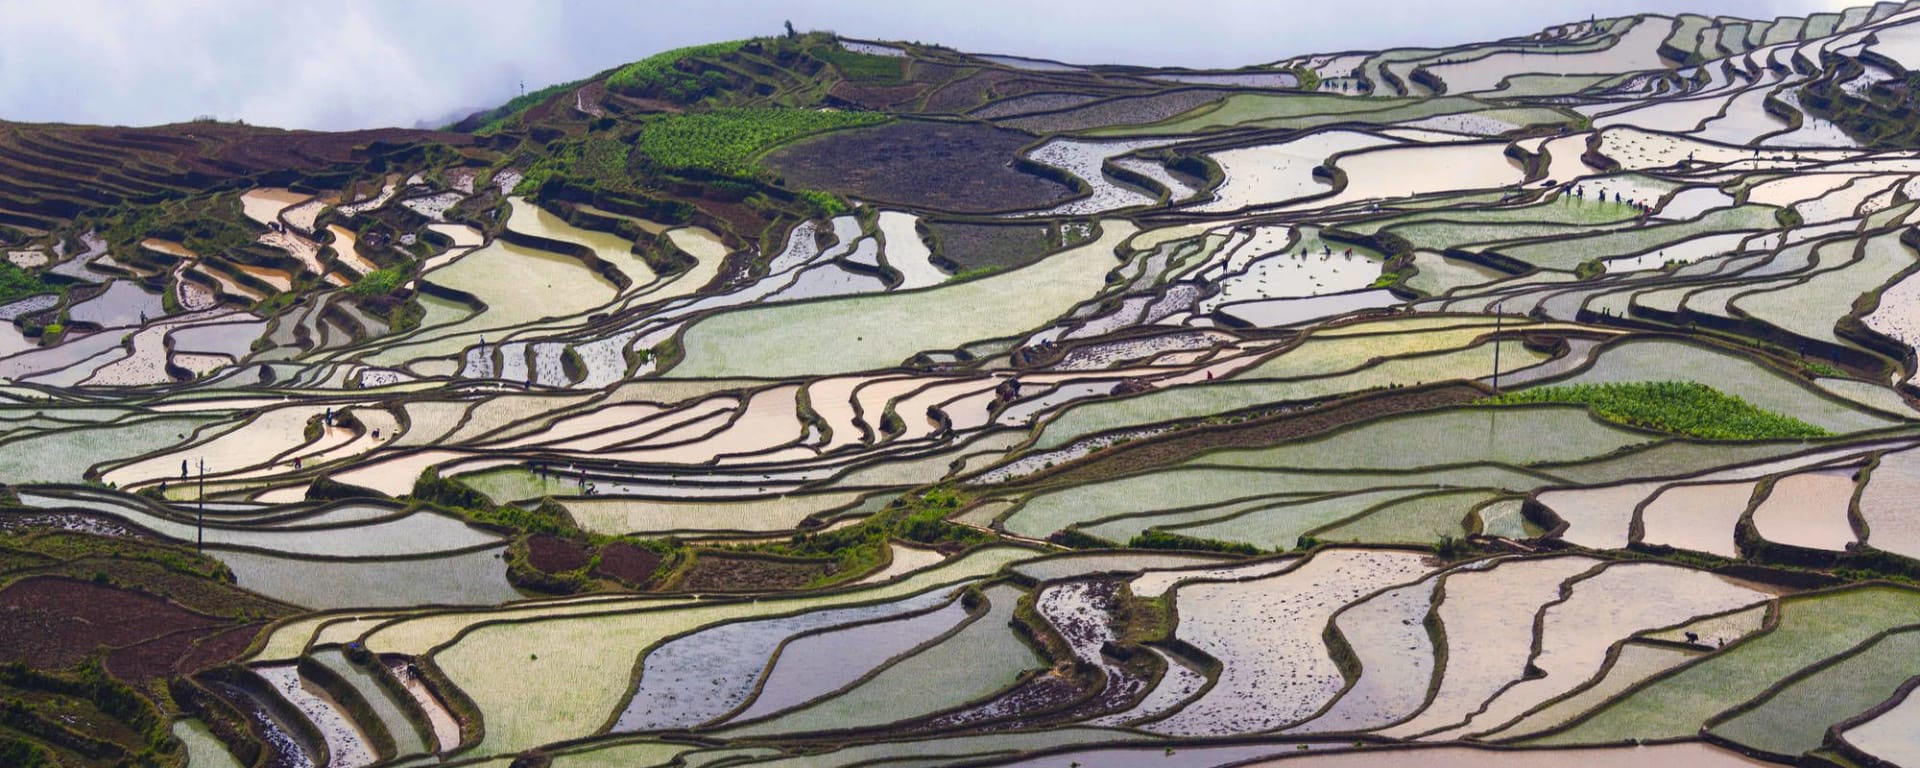 China Reisen und Ferien von tourasia: Yuanyang rice terraces